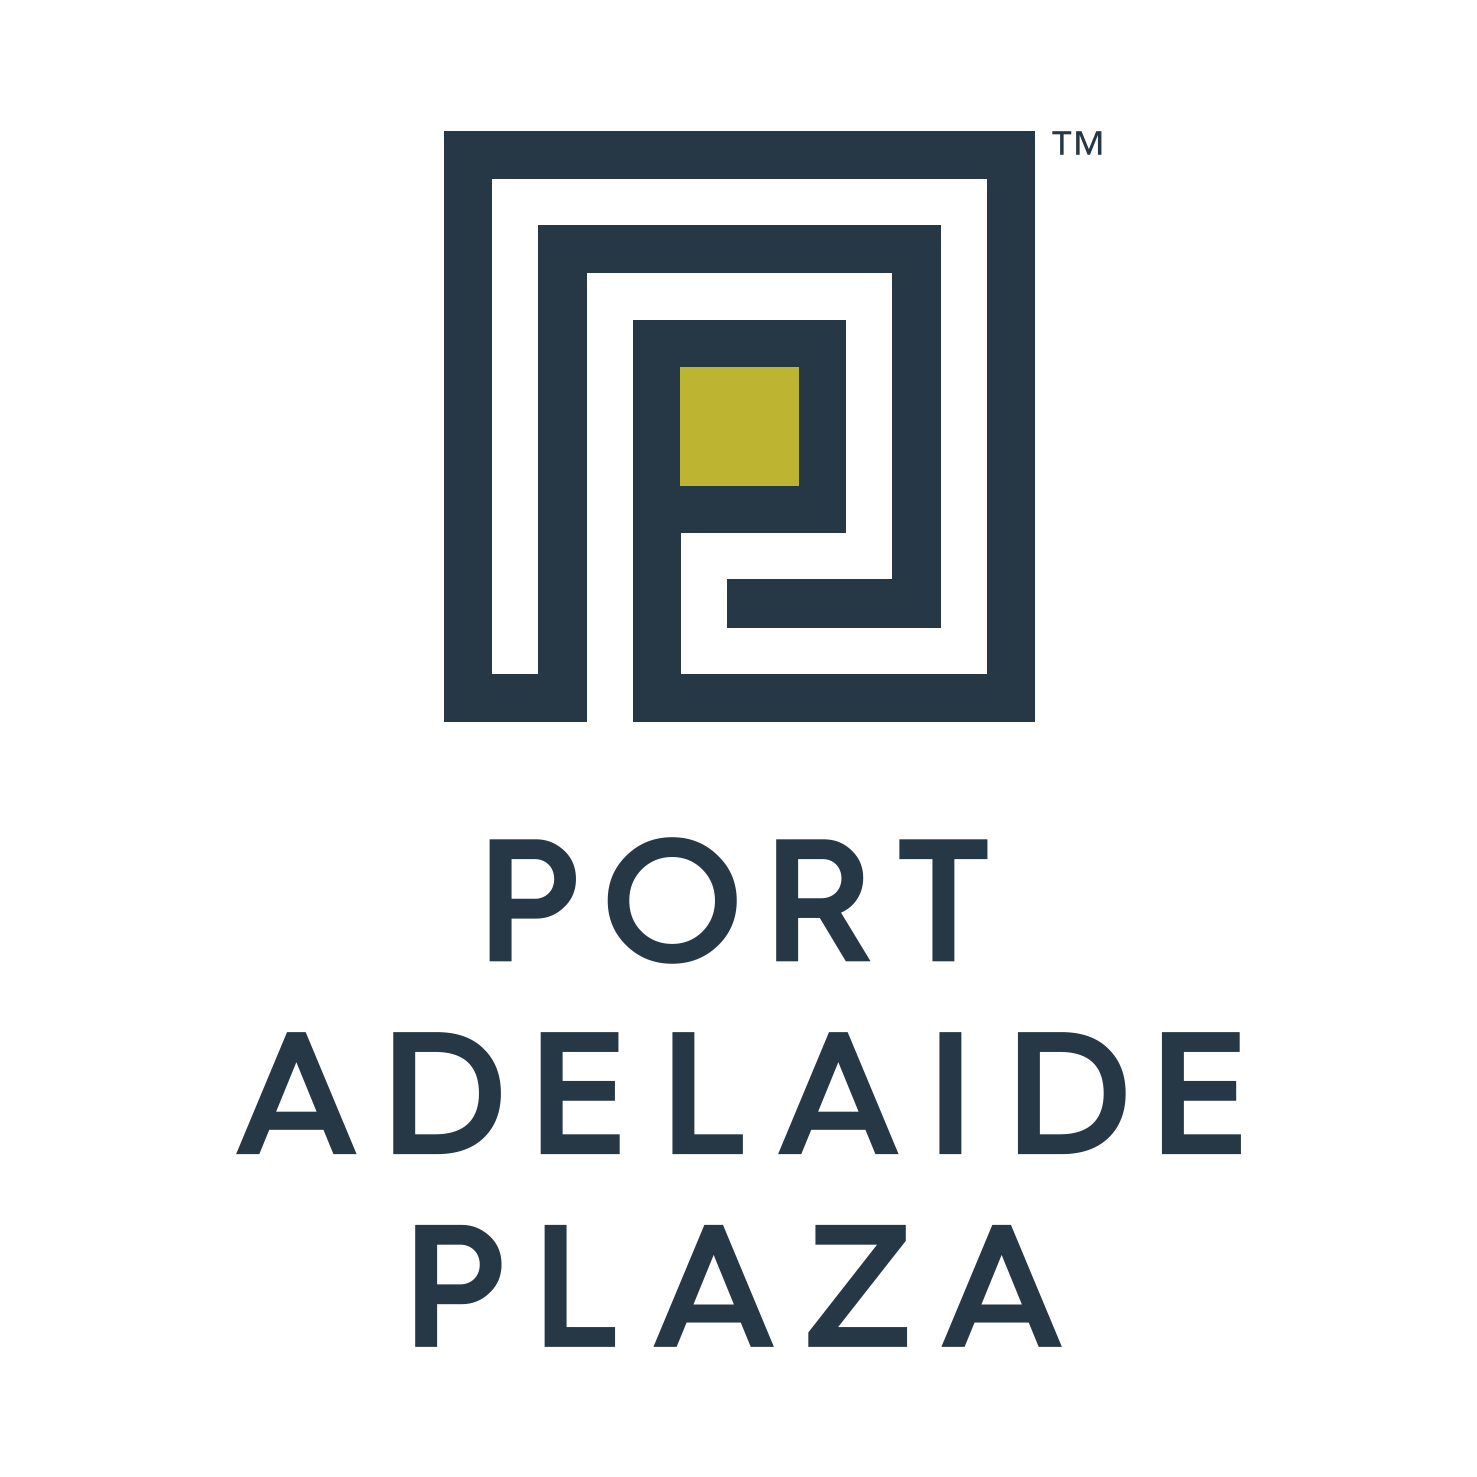 Port Adelaide Plaza - Adelaide, SA 5015 - (08) 8249 0600 | ShowMeLocal.com